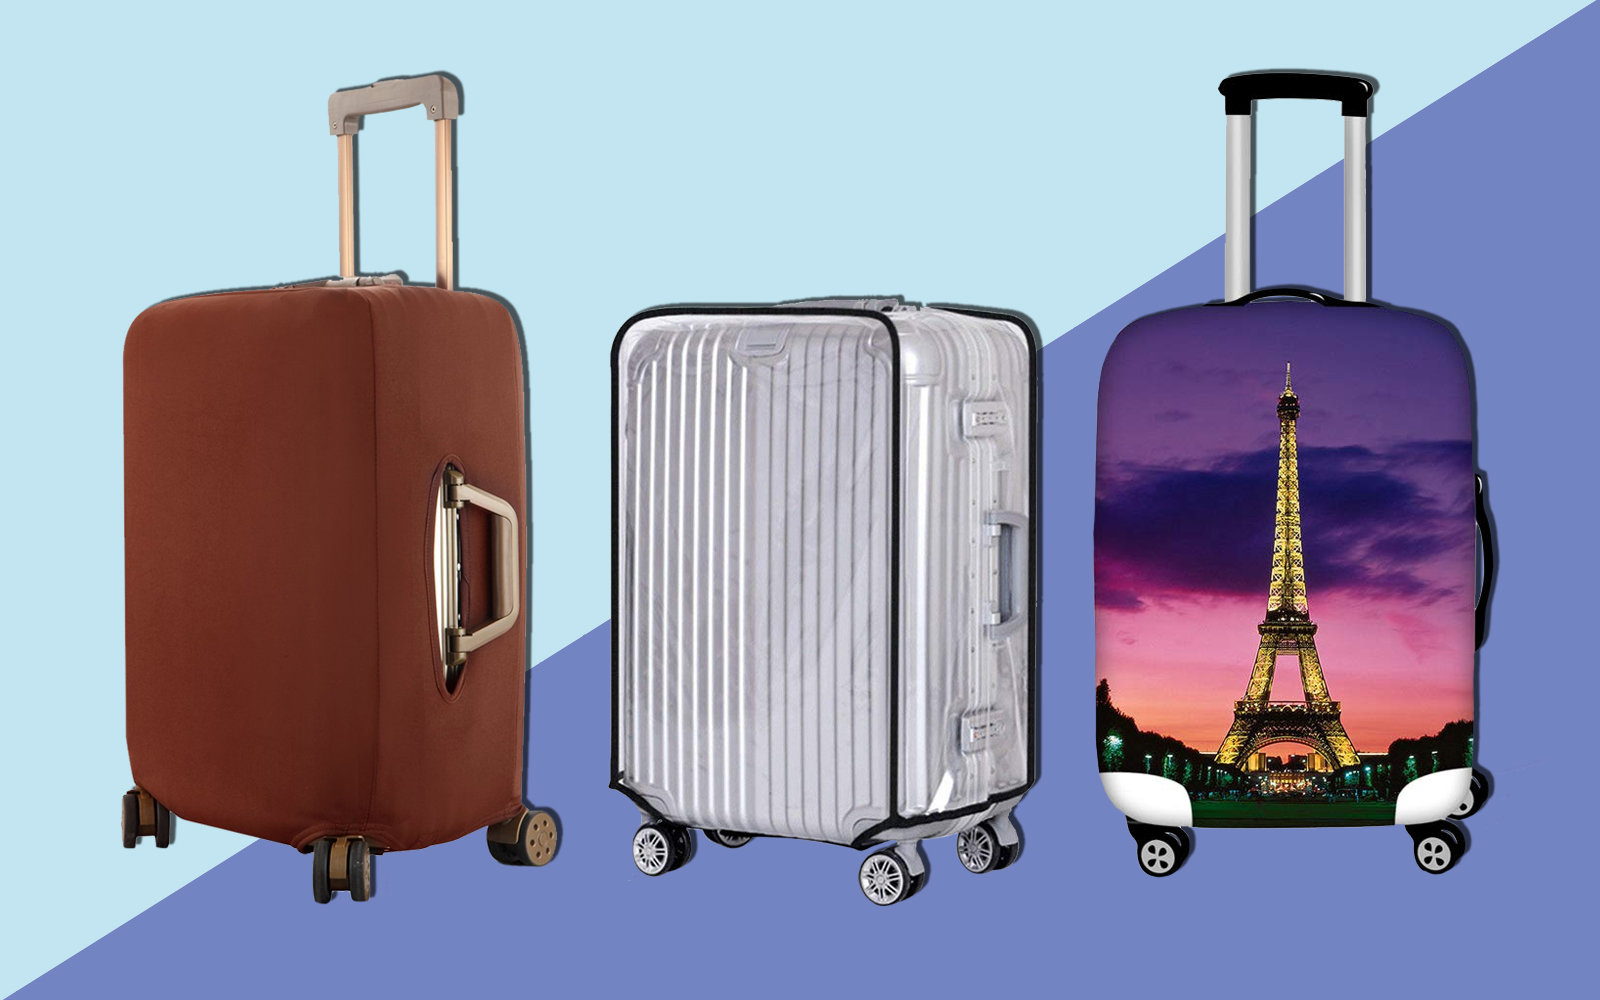 best-luggage-suitcase-covers-amazon-LUGGCOVERS0119.jpg